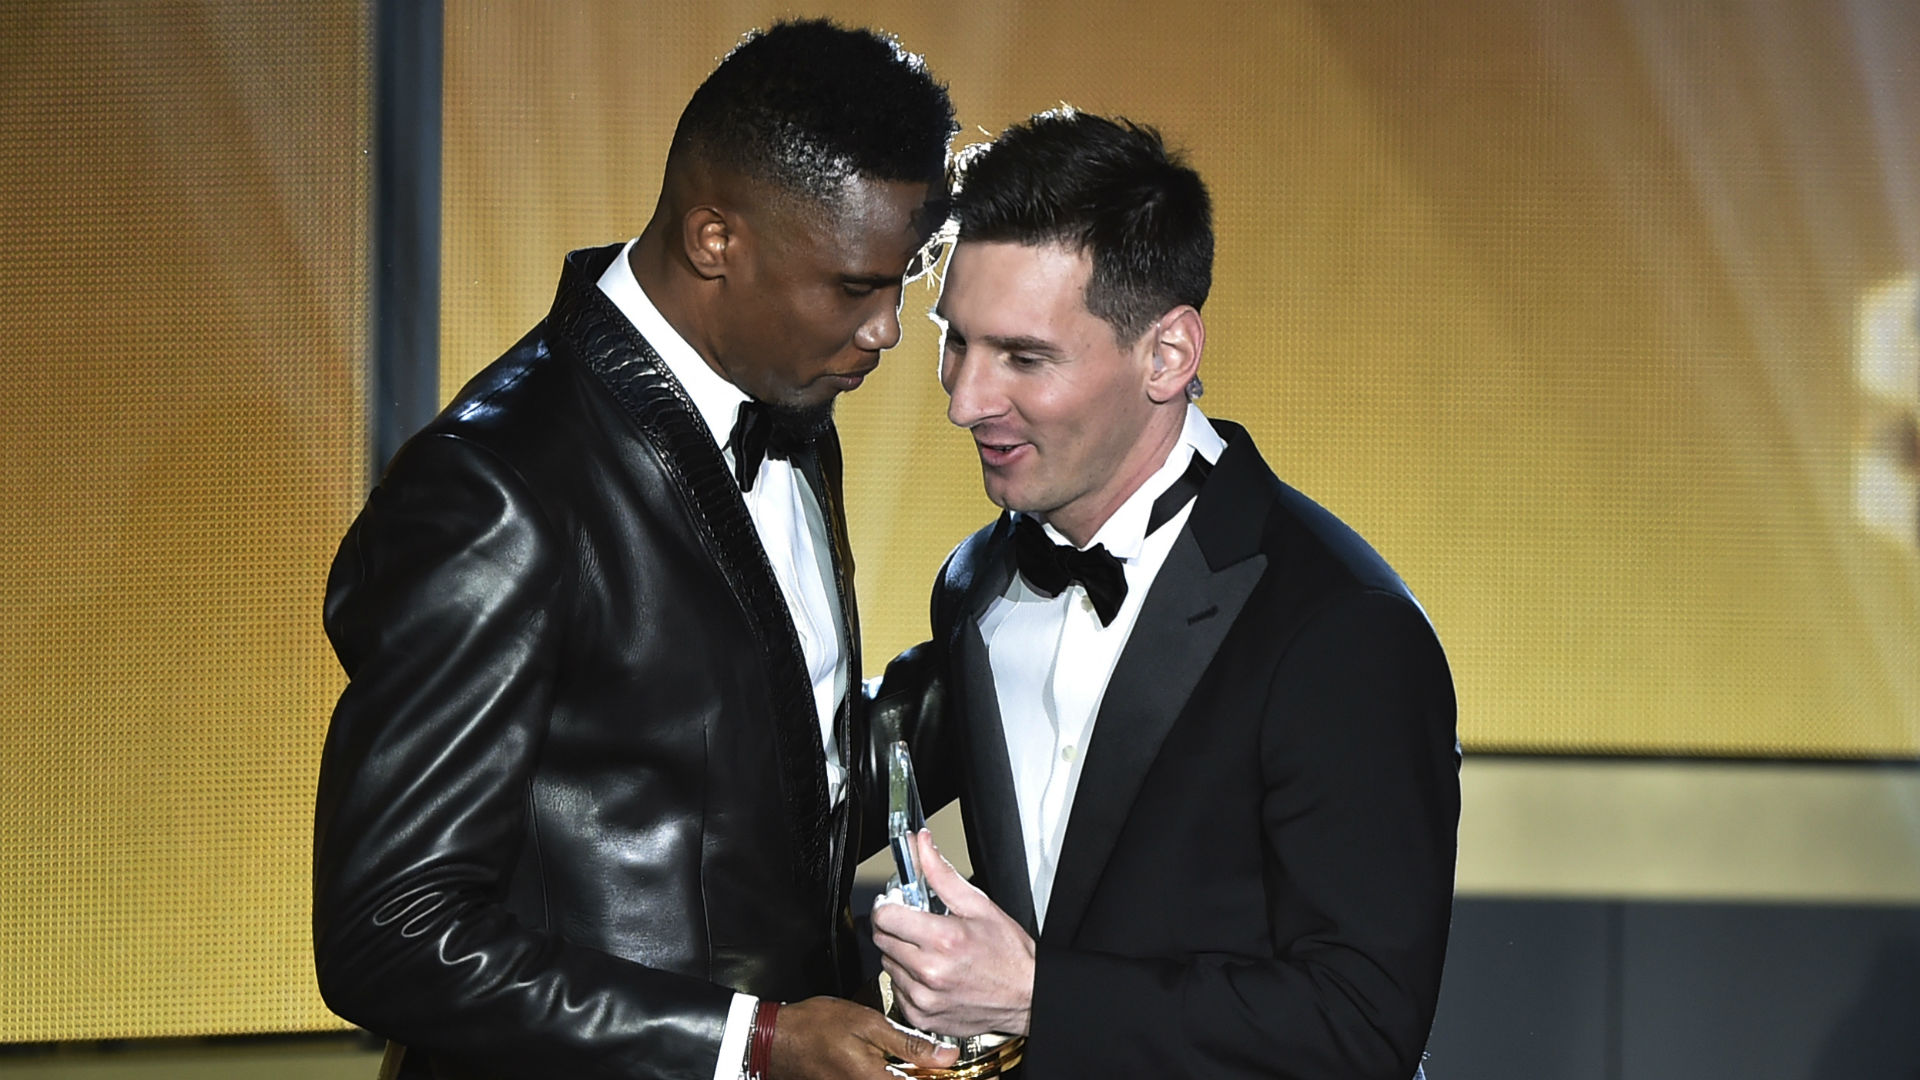 'Don't cry son' – Eto'o sends message to Messi after Barcelona exit